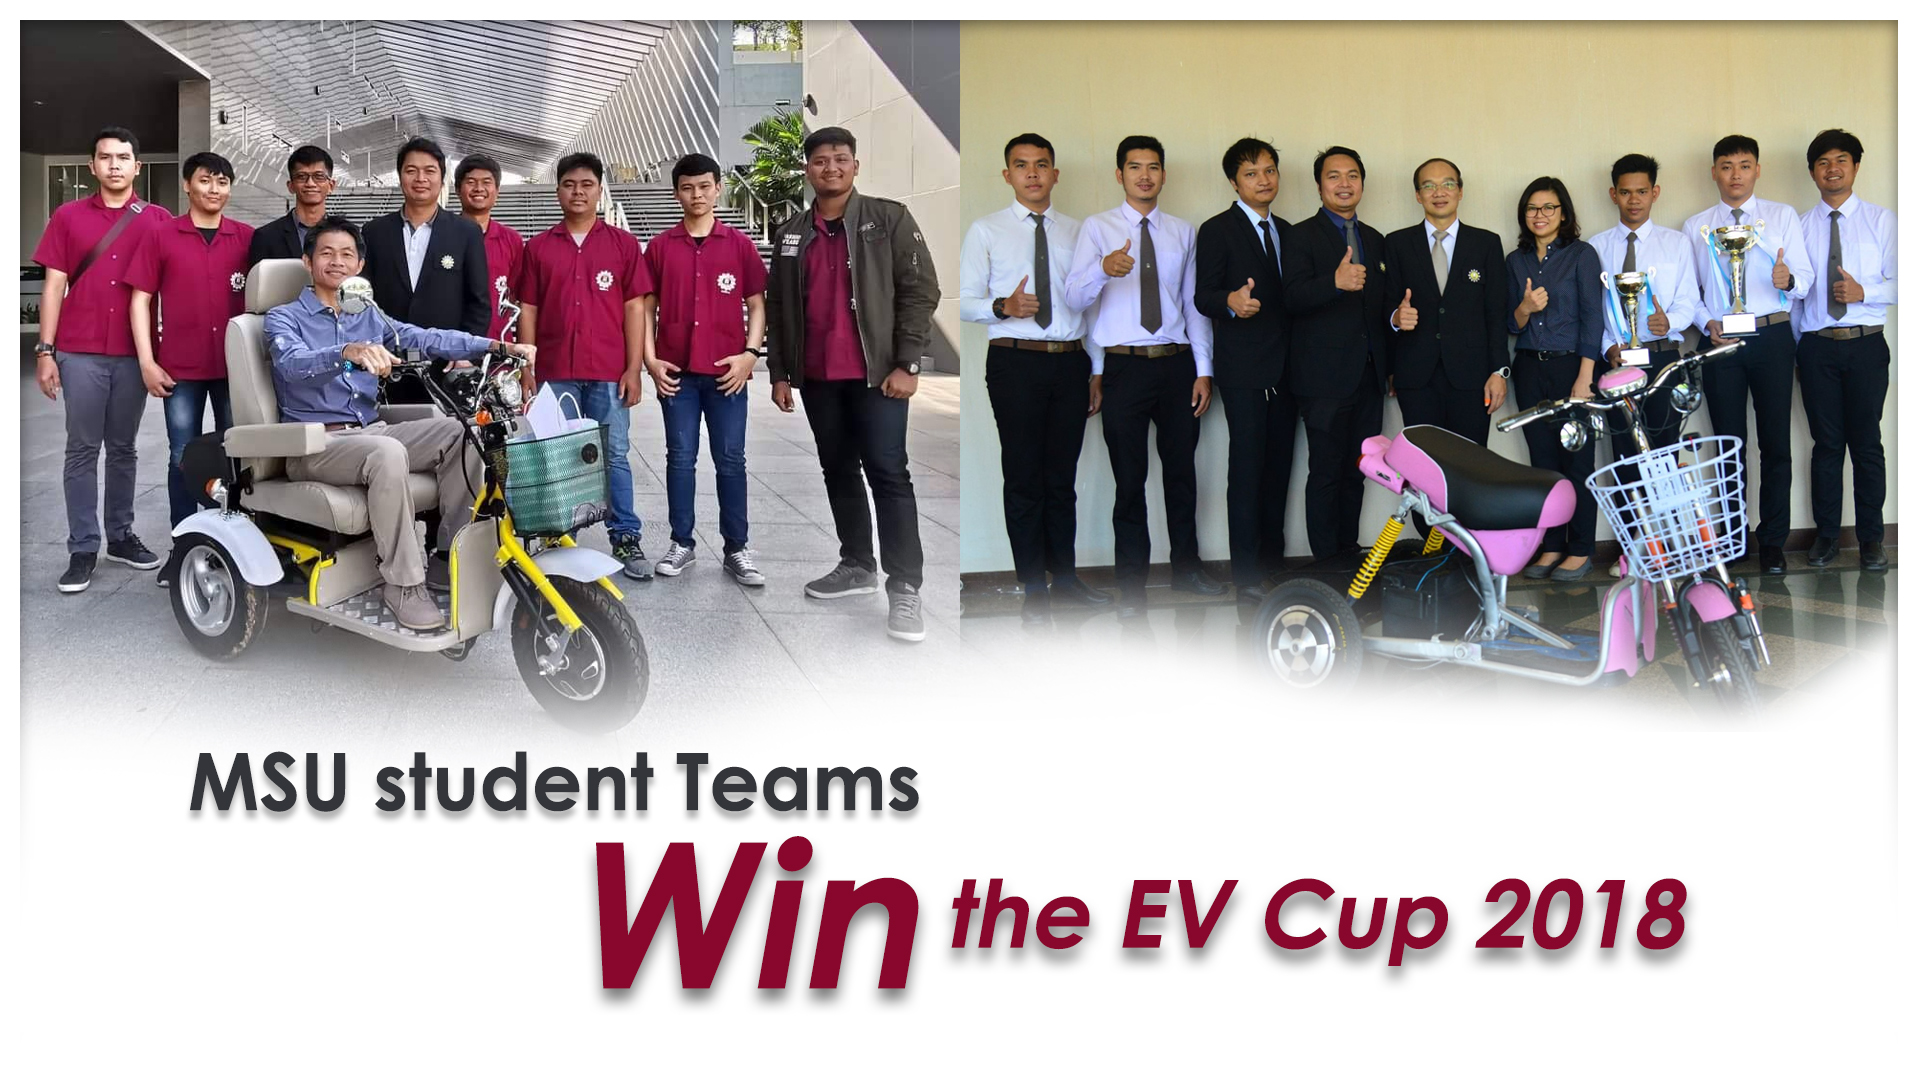 MSU student Teams win the EV Cup 2018